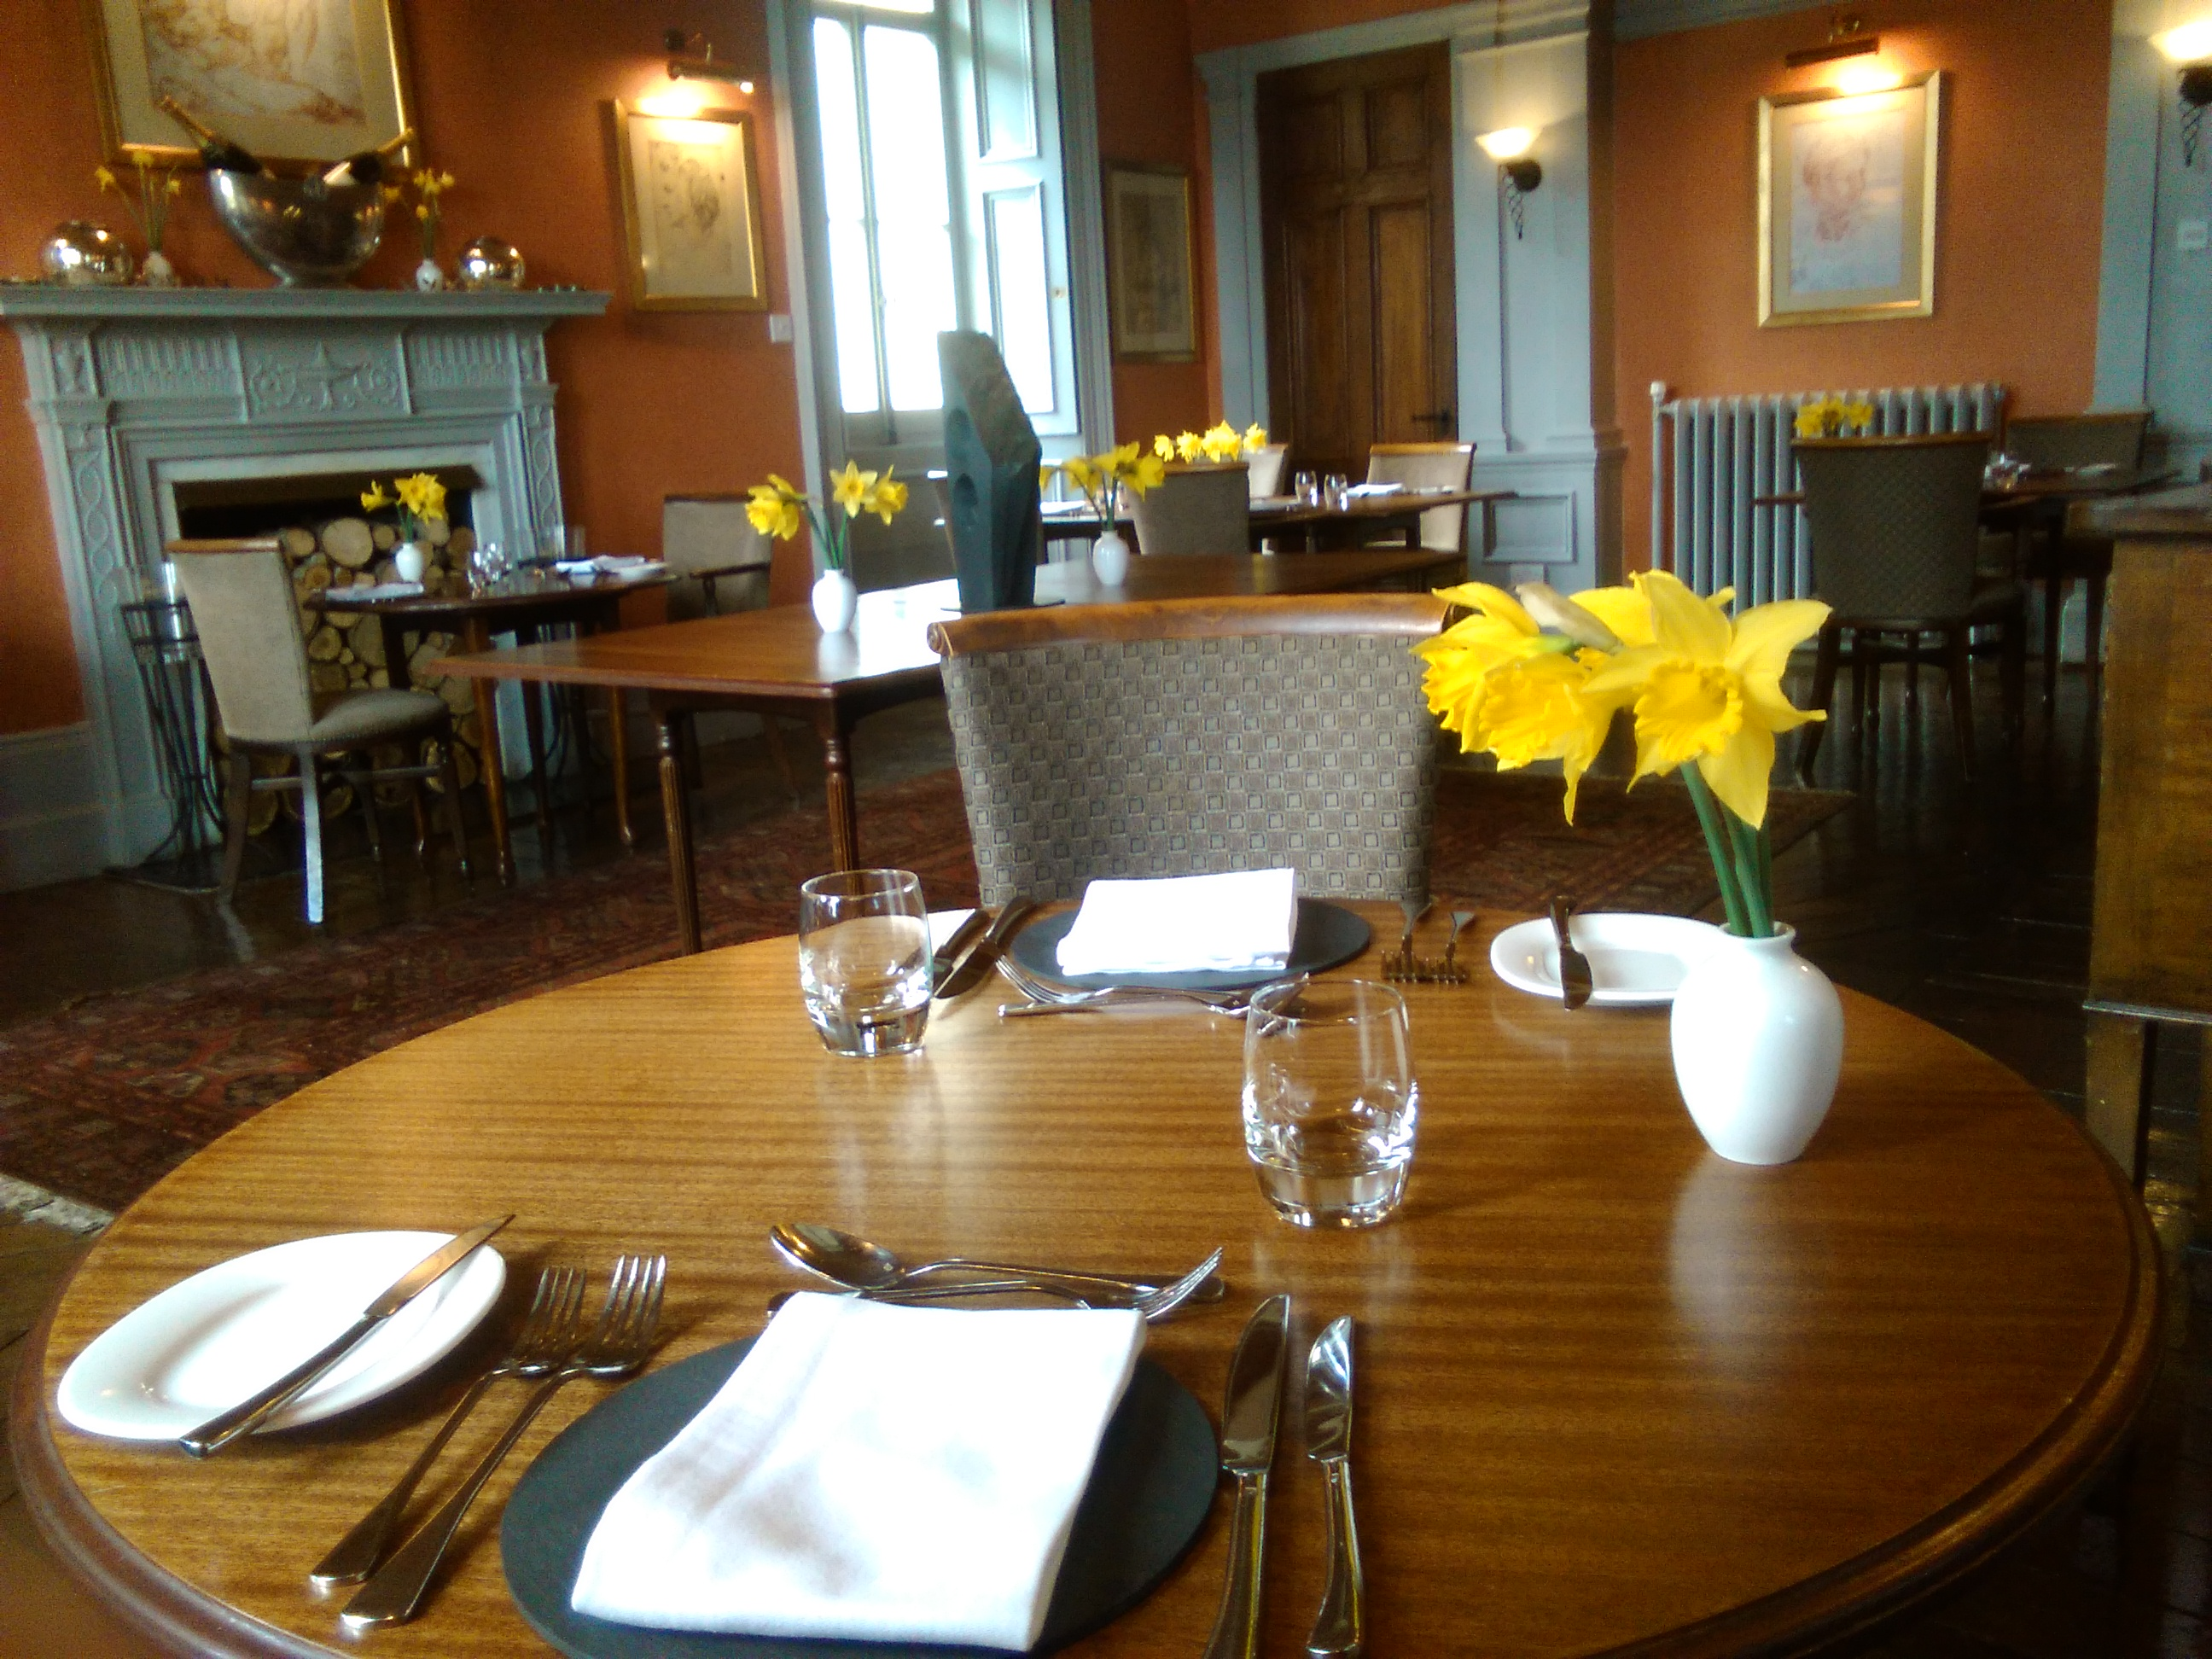 Restaurant in lampeter ceredigion book a table online the falcondale - Book a restaurant table online ...